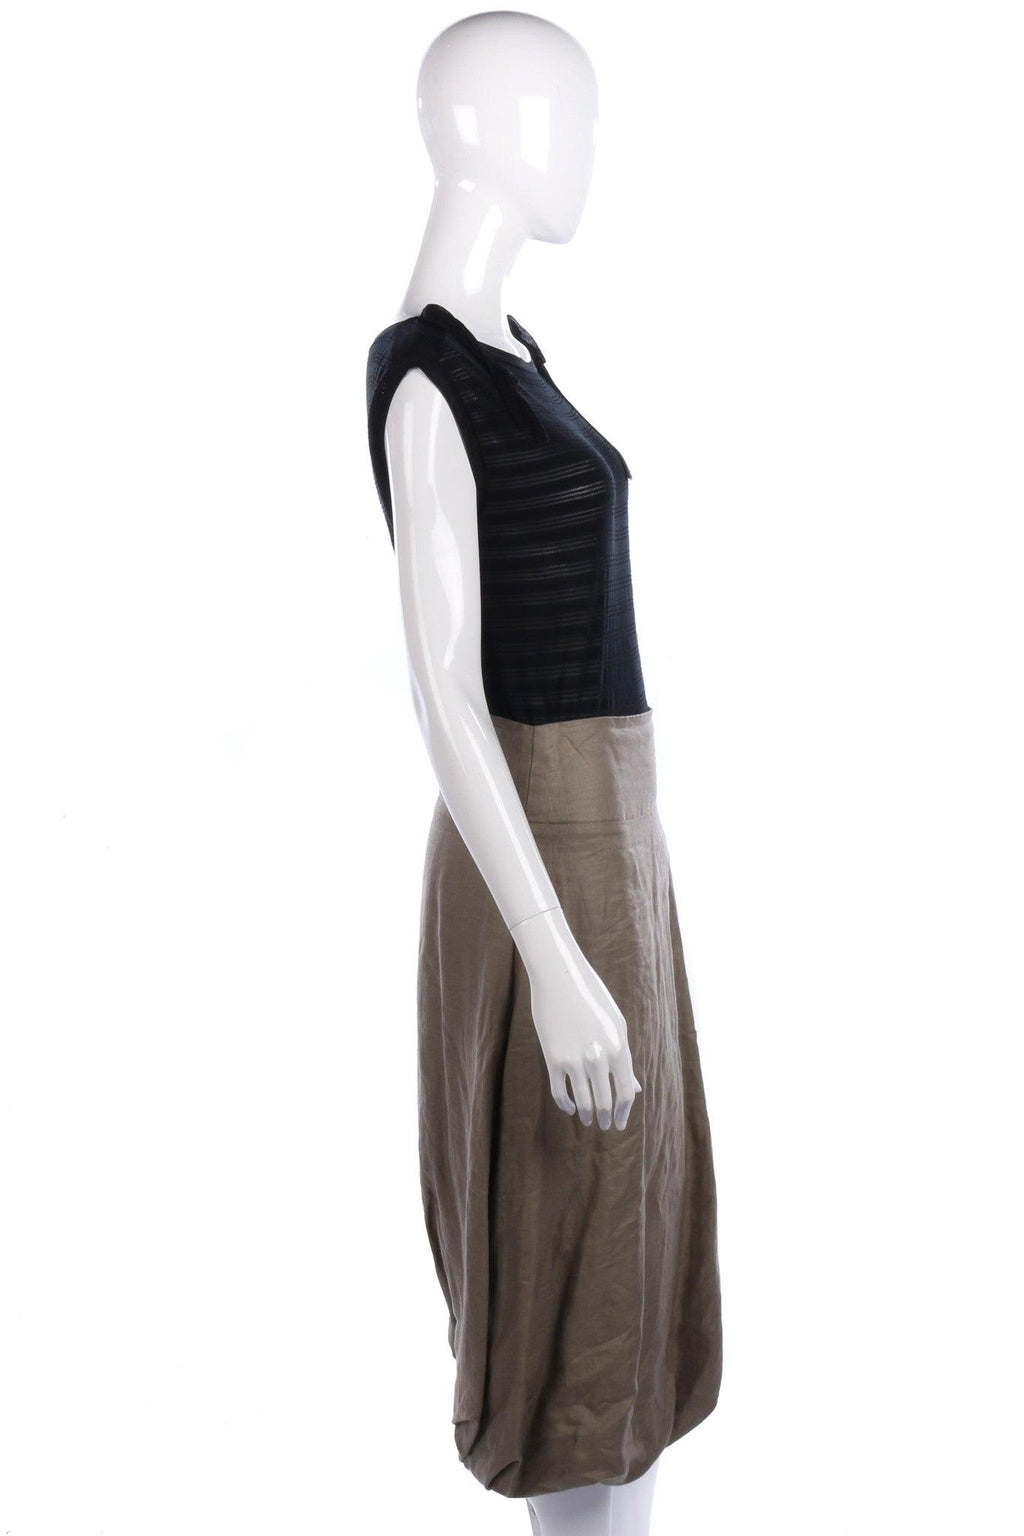 Sarah Pacini Skirt Linen Sage Green Label Size0 (UK6/8)